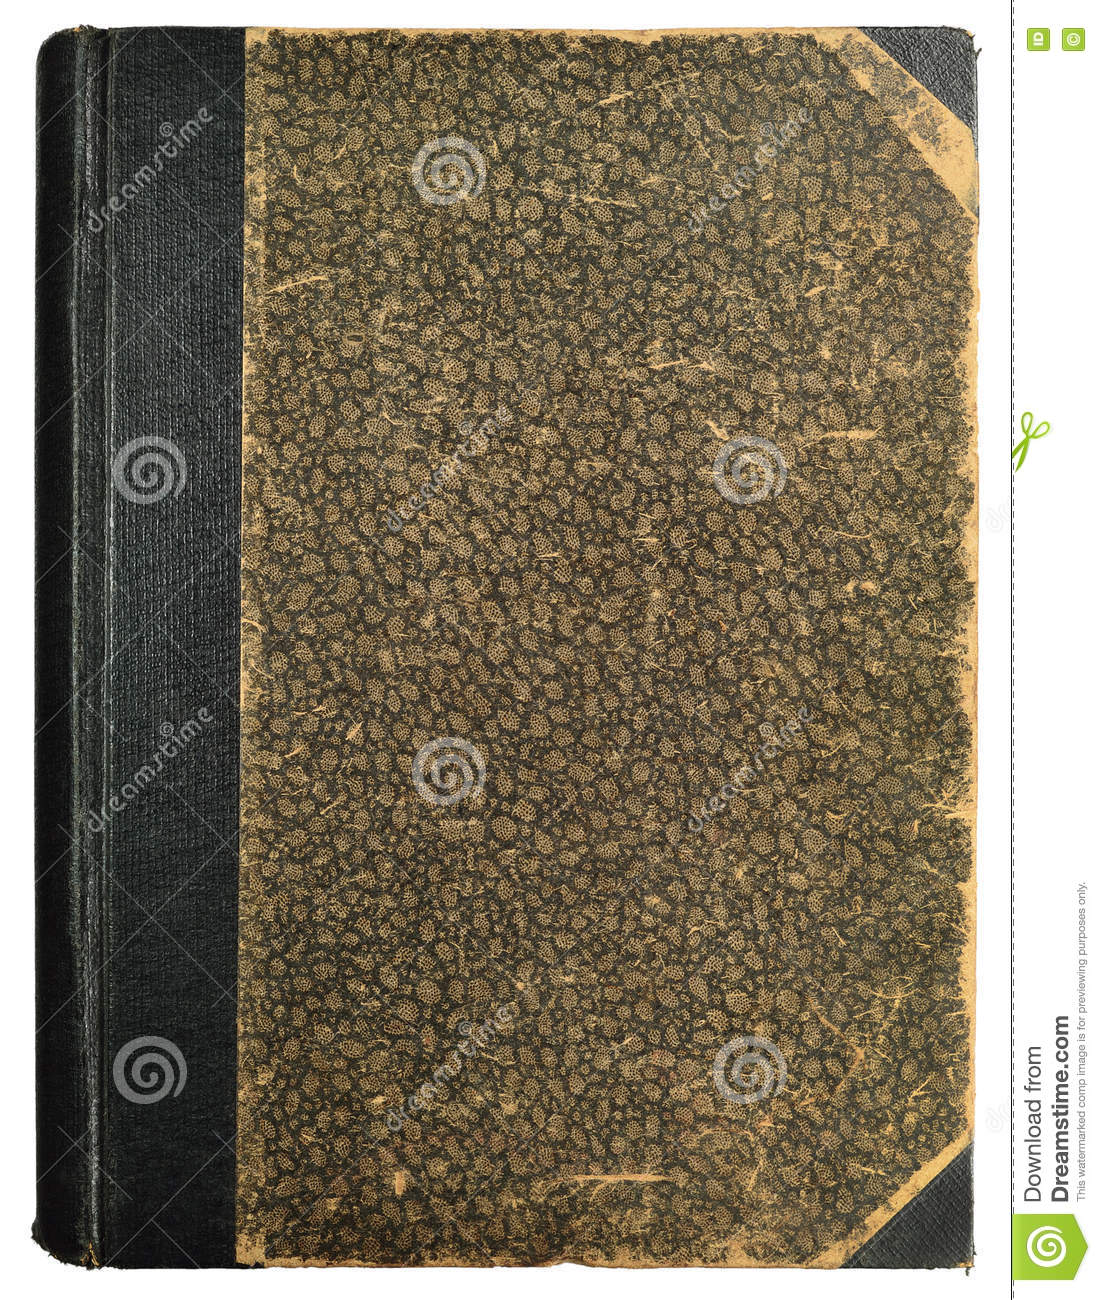 Grunge Book Cover Texture : Grunge vintage book hard cover blank empty antique